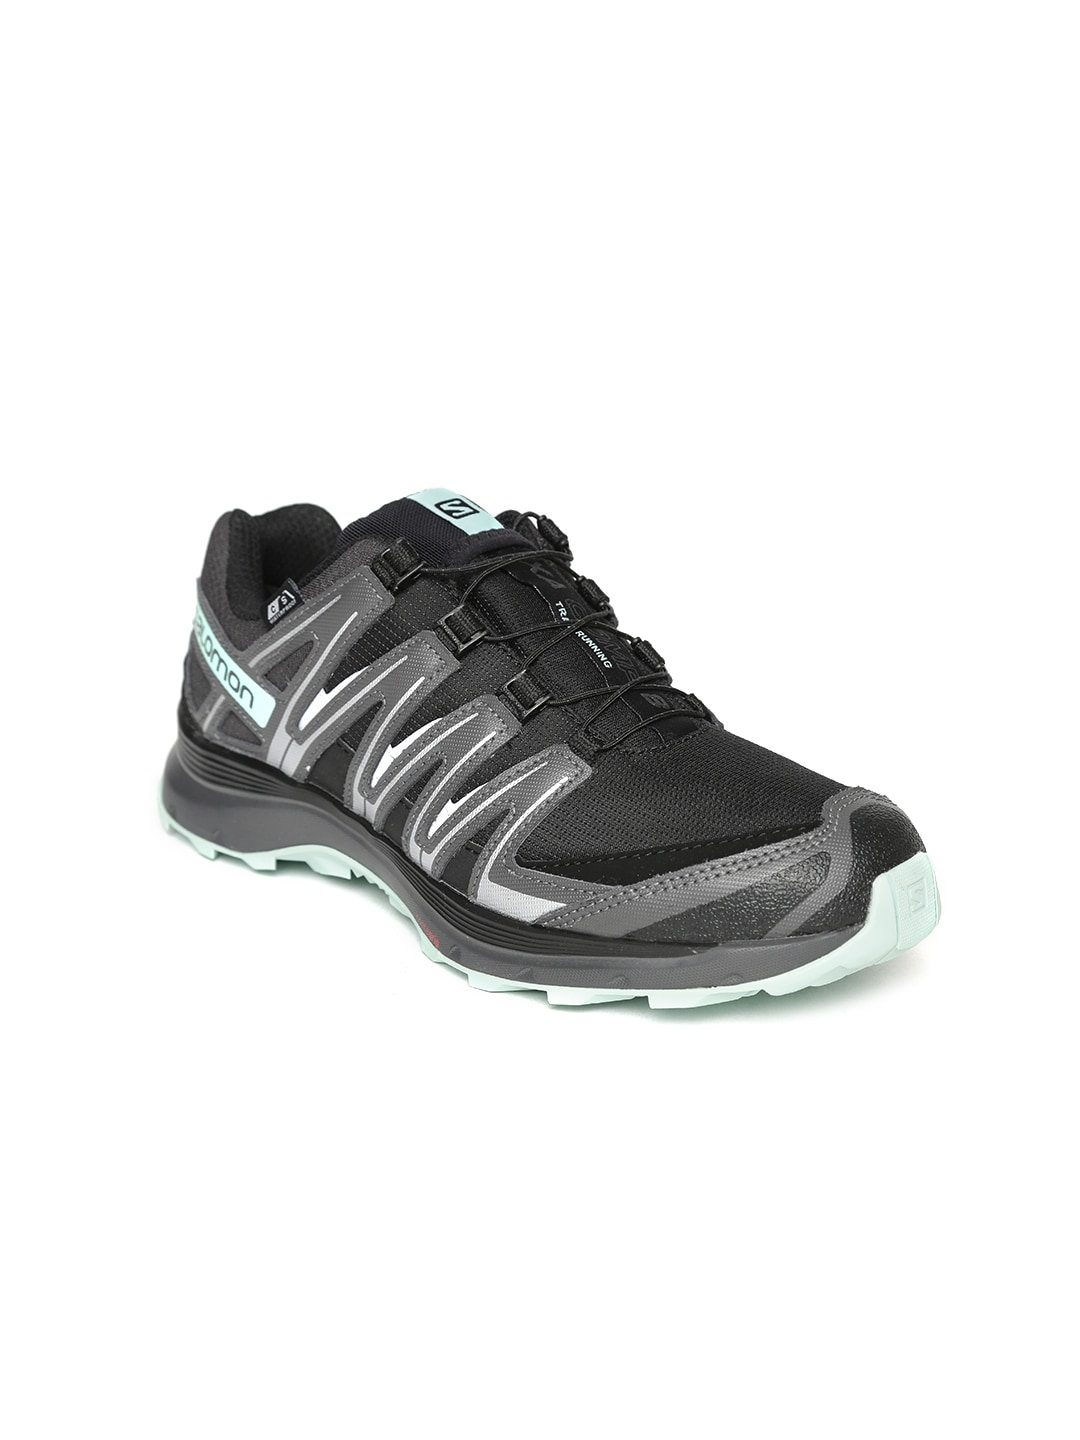 newest e8ab3 93cd6 Waterproof Shoes - Buy Waterproof Shoes Online in India   Myntra